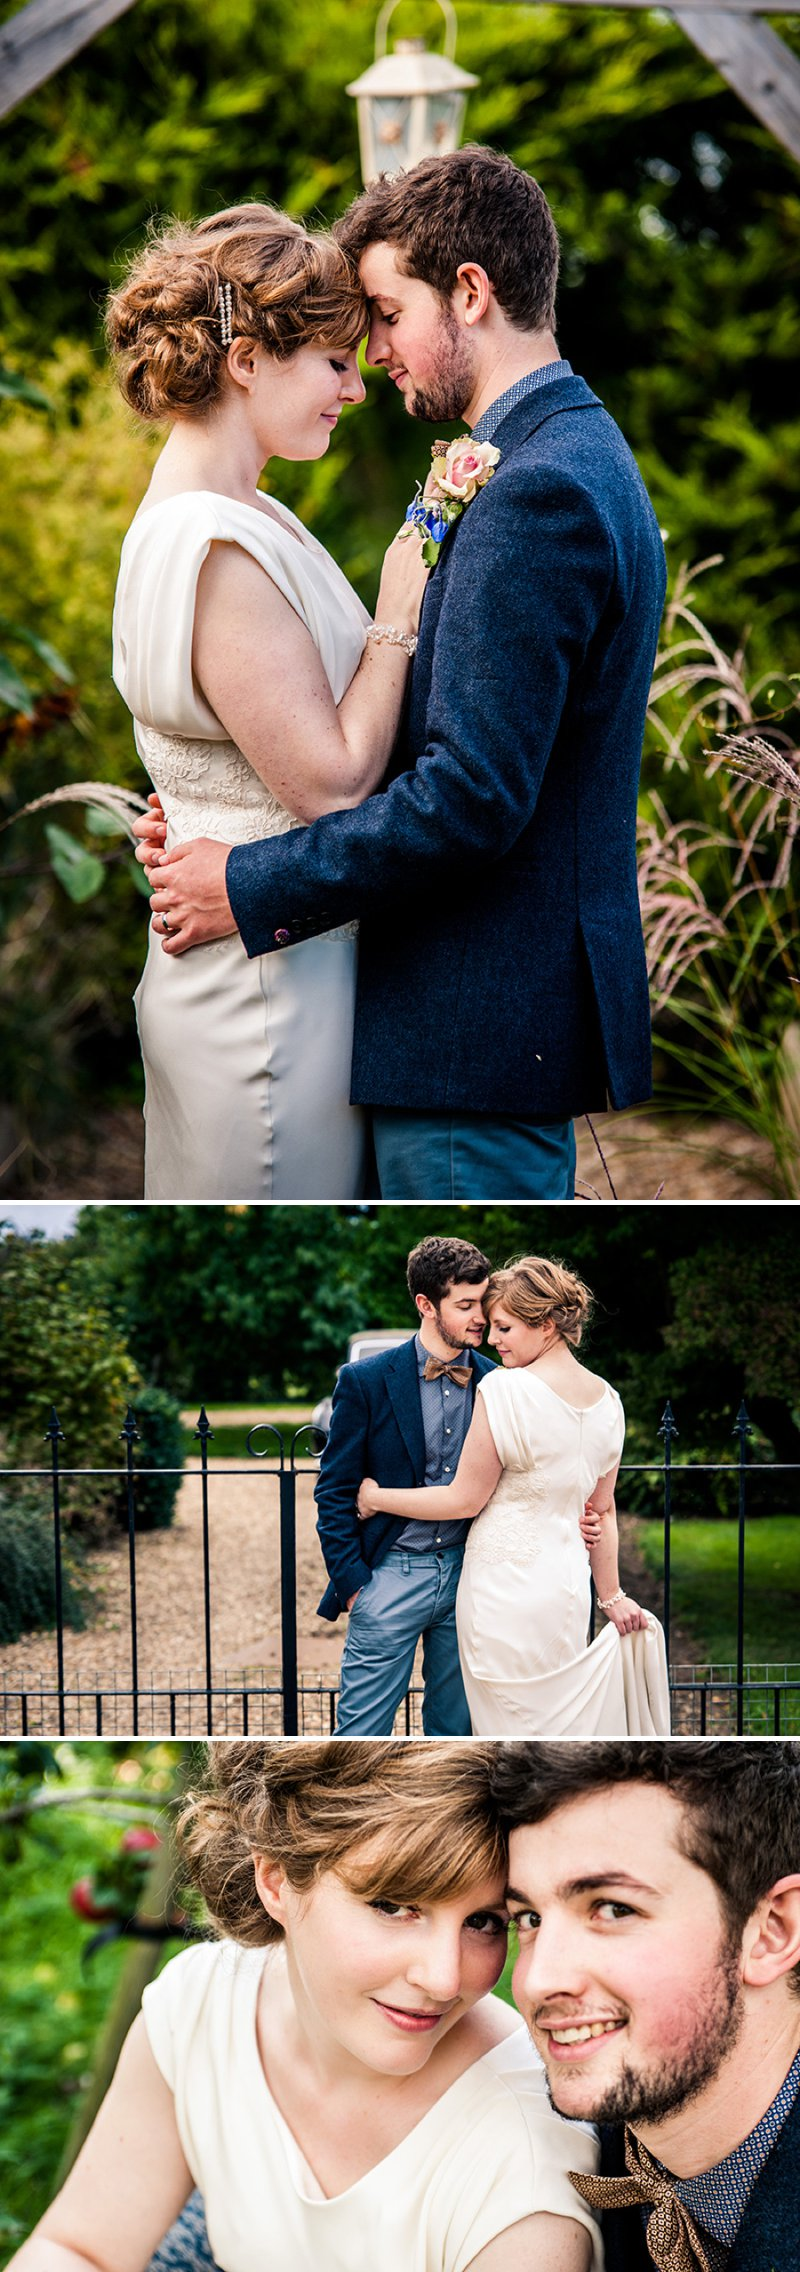 Rustic Backyard Wedding With Bride In Elegant Rapsimo Dress And Groom In Wool Suit And Bowtie With Lots Of Home Made Details And A High Tea Wedding Breakfast 11